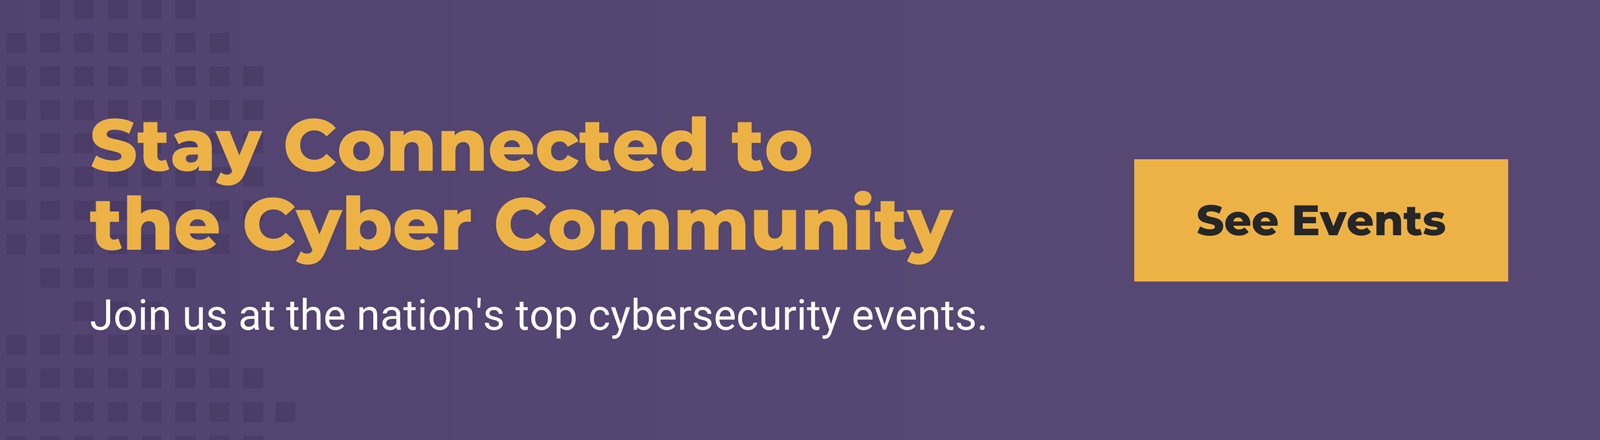 cybersecurity events page